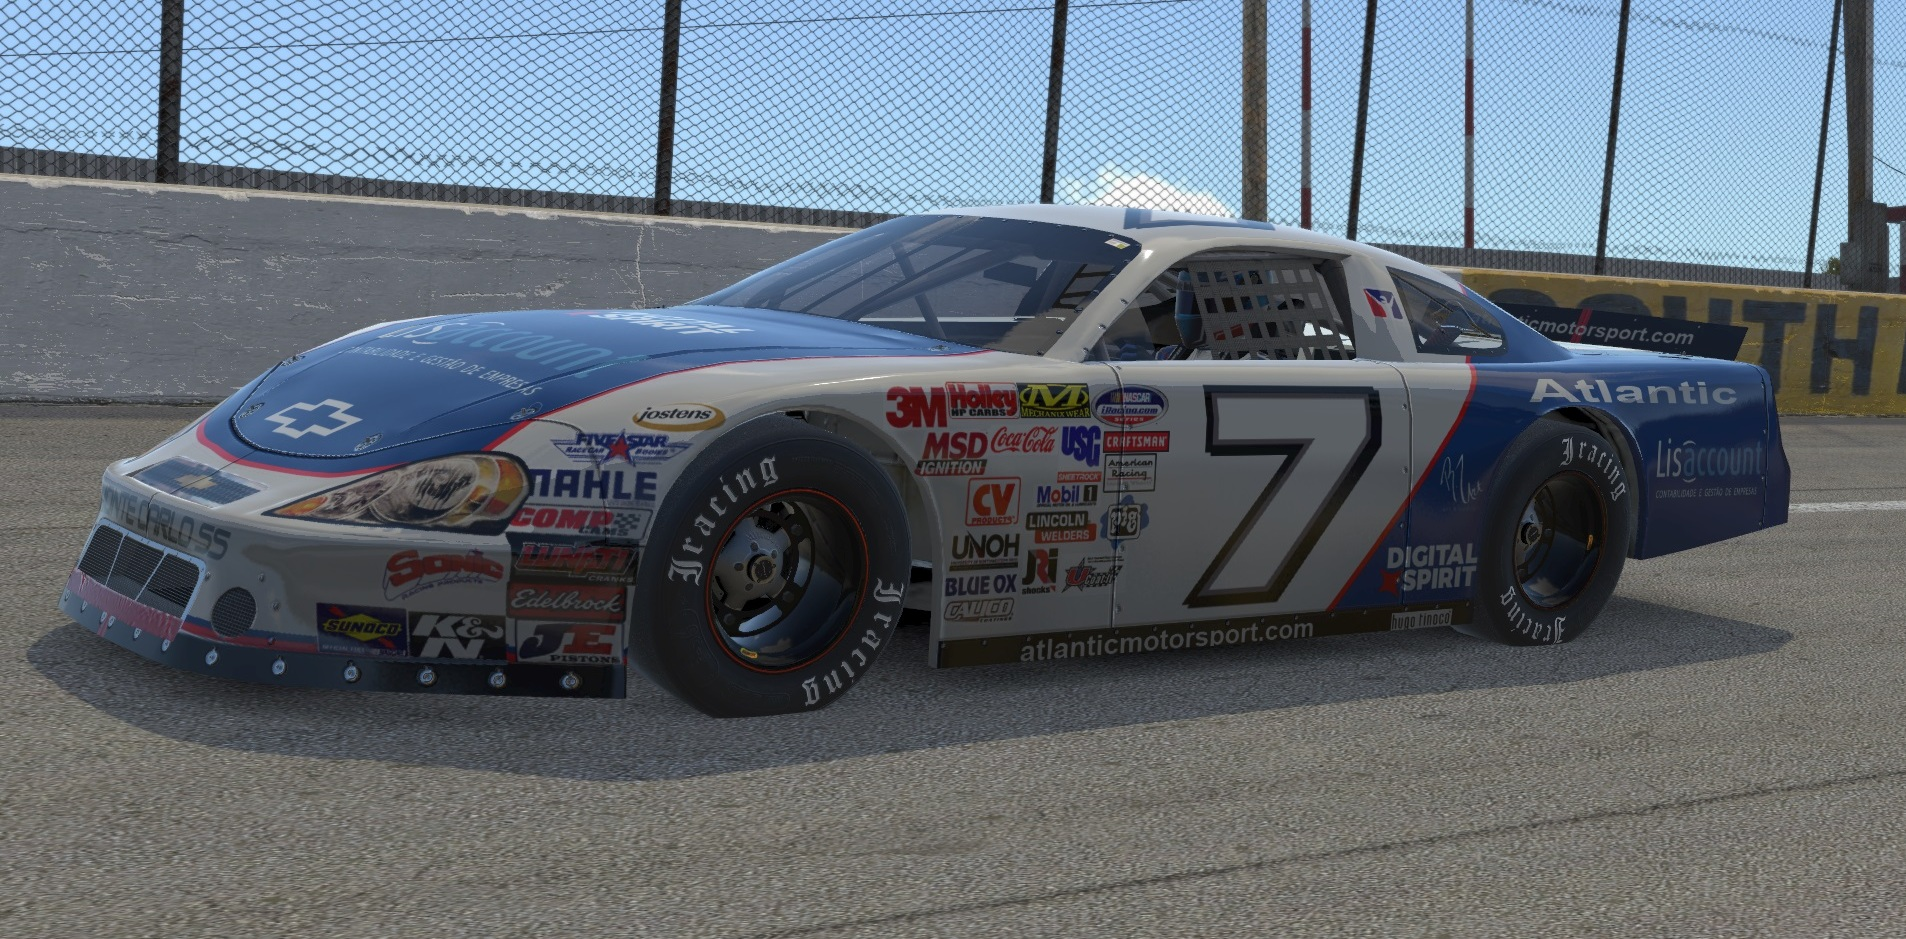 Atlantic Motorsport Academy presents the new Chevrolet Monte Carlo SS for iRacing